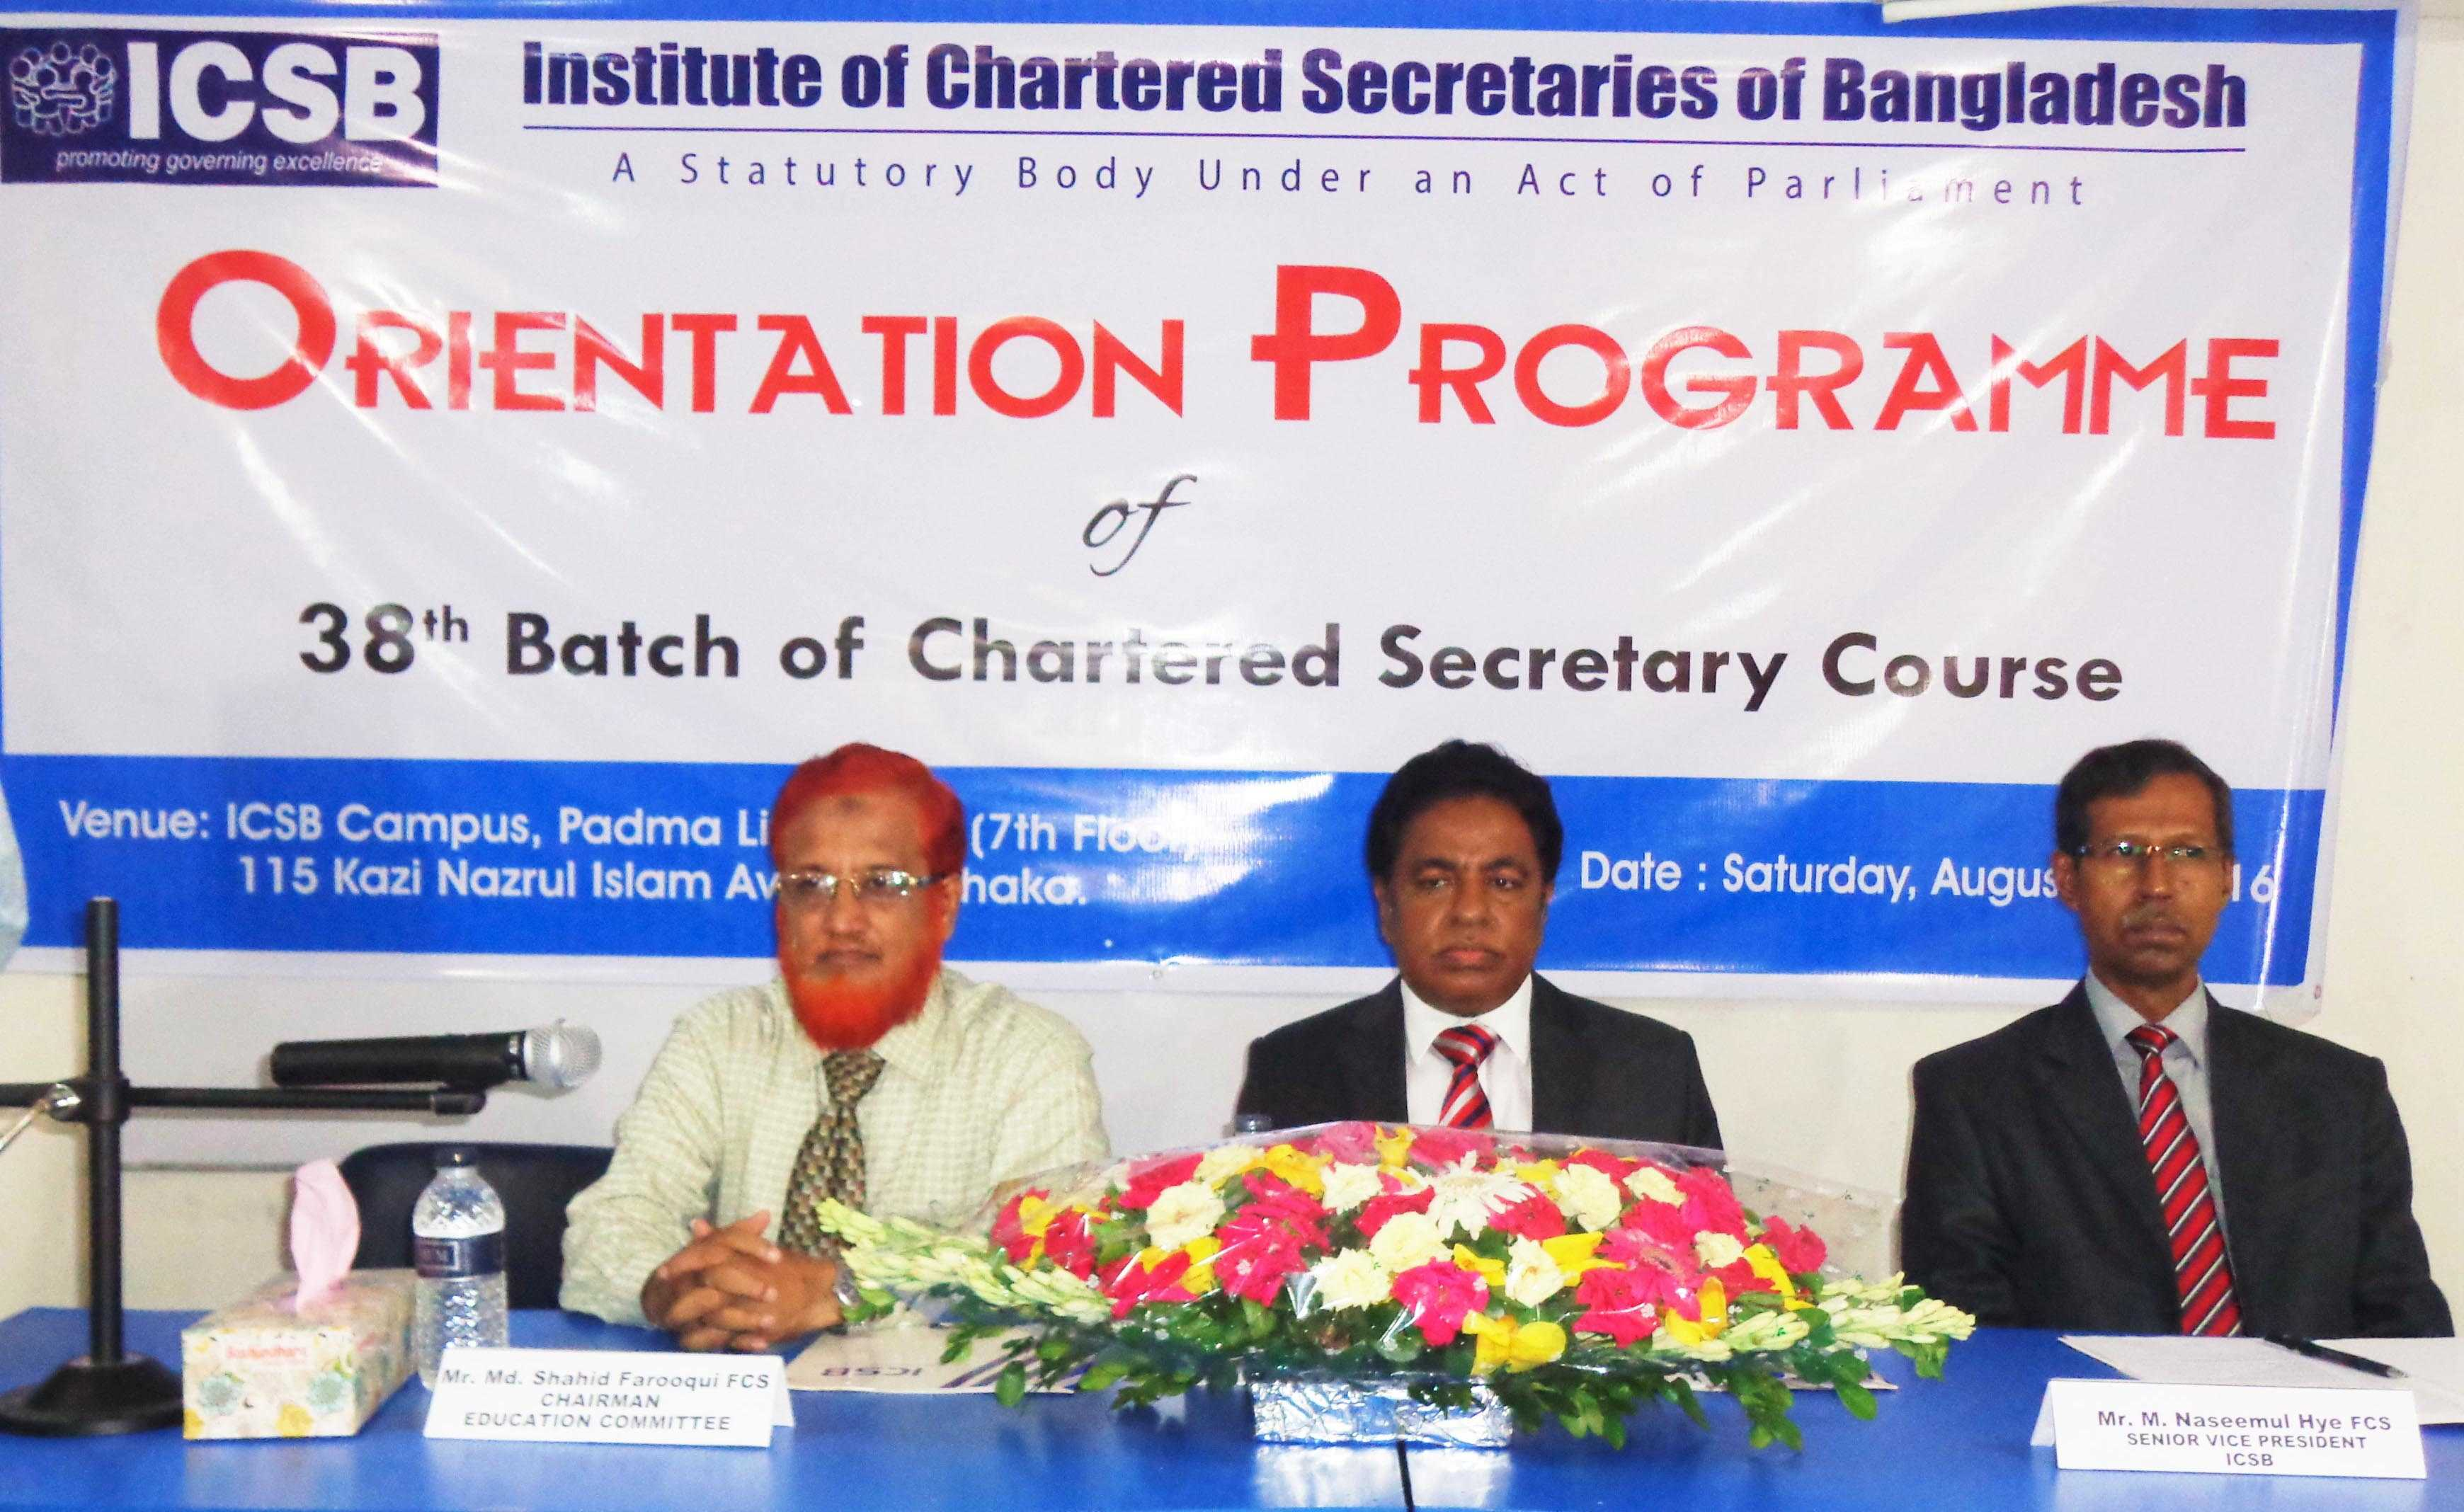 Orientation Programme of 38th Batch of Chartered Secretary Course of ICSB Held